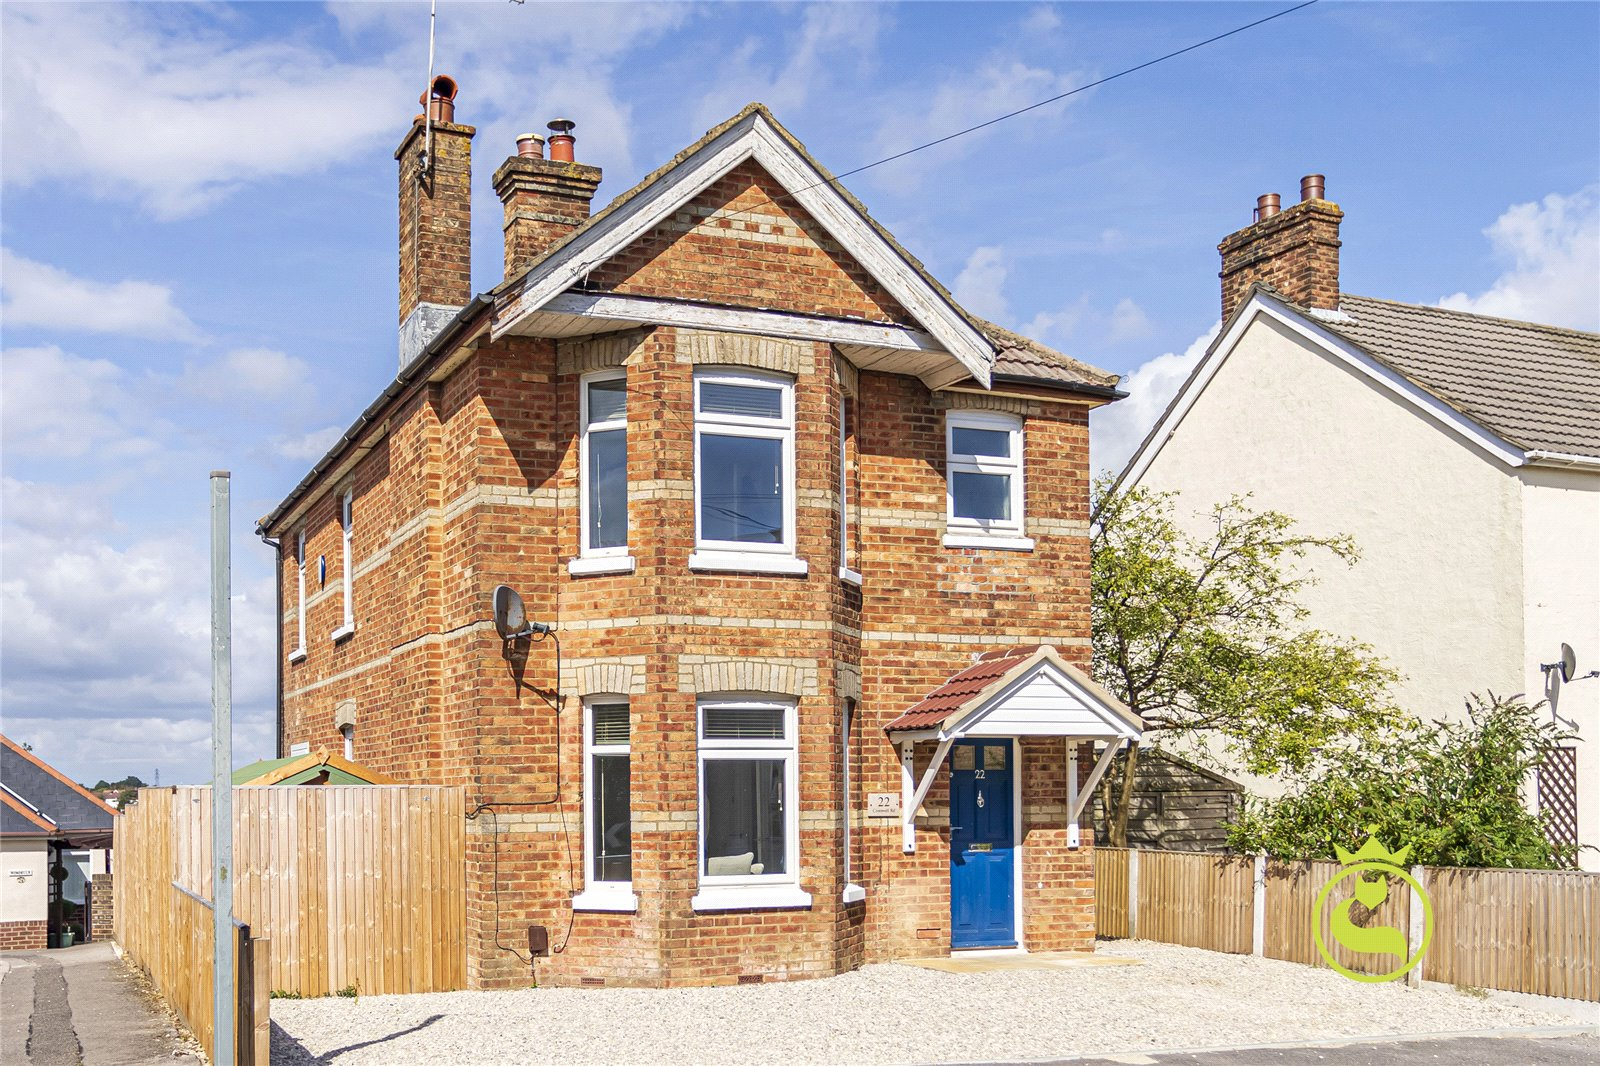 3 bed house for sale in Cromwell Road, Parkstone - Property Image 1